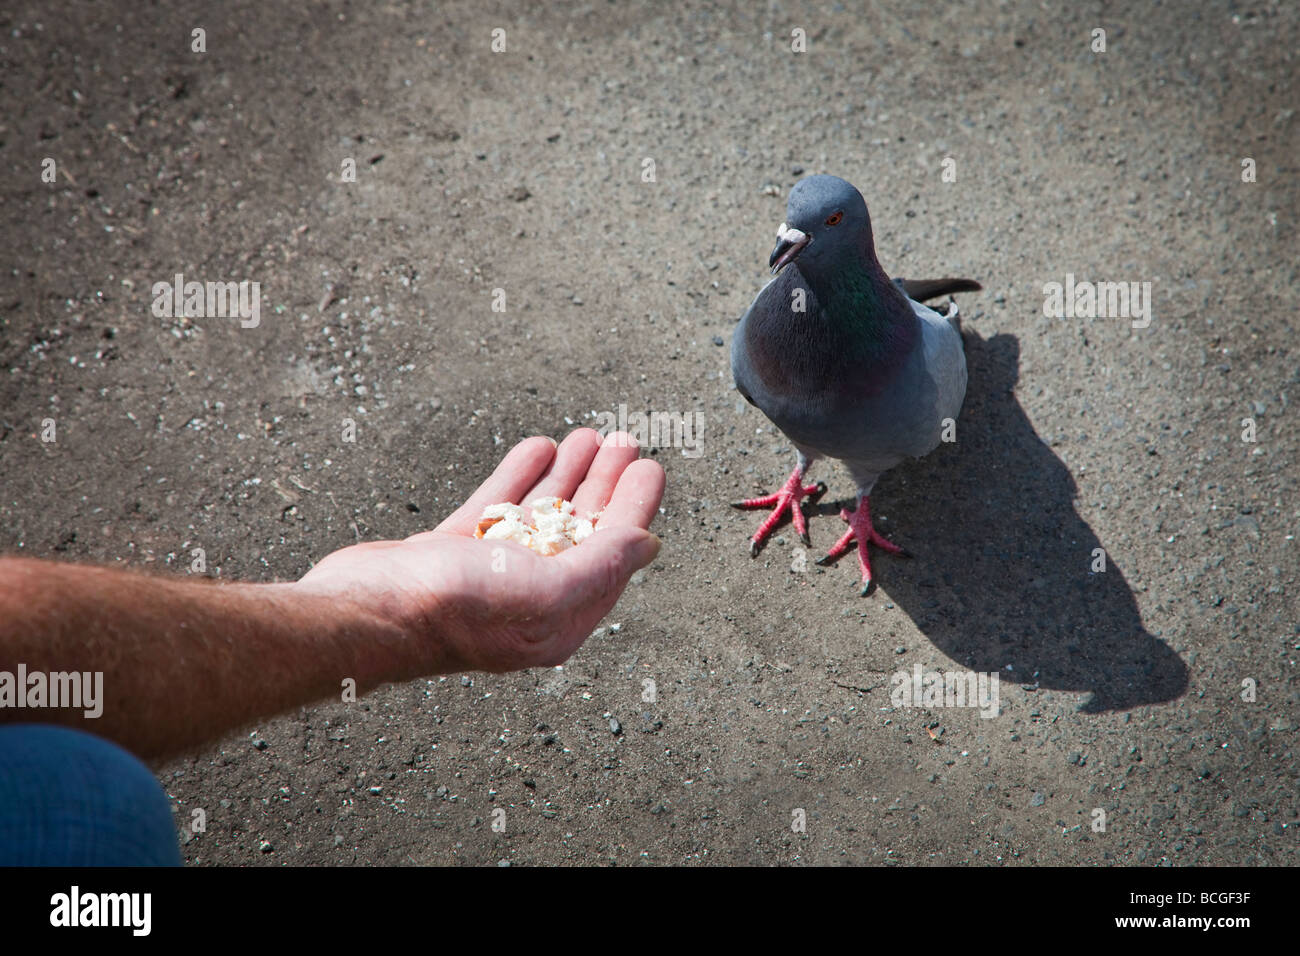 Hand feeding bread to a common pigeon also known as a city pigeon or feral pigeon, Glasgow, Scotland - Stock Image